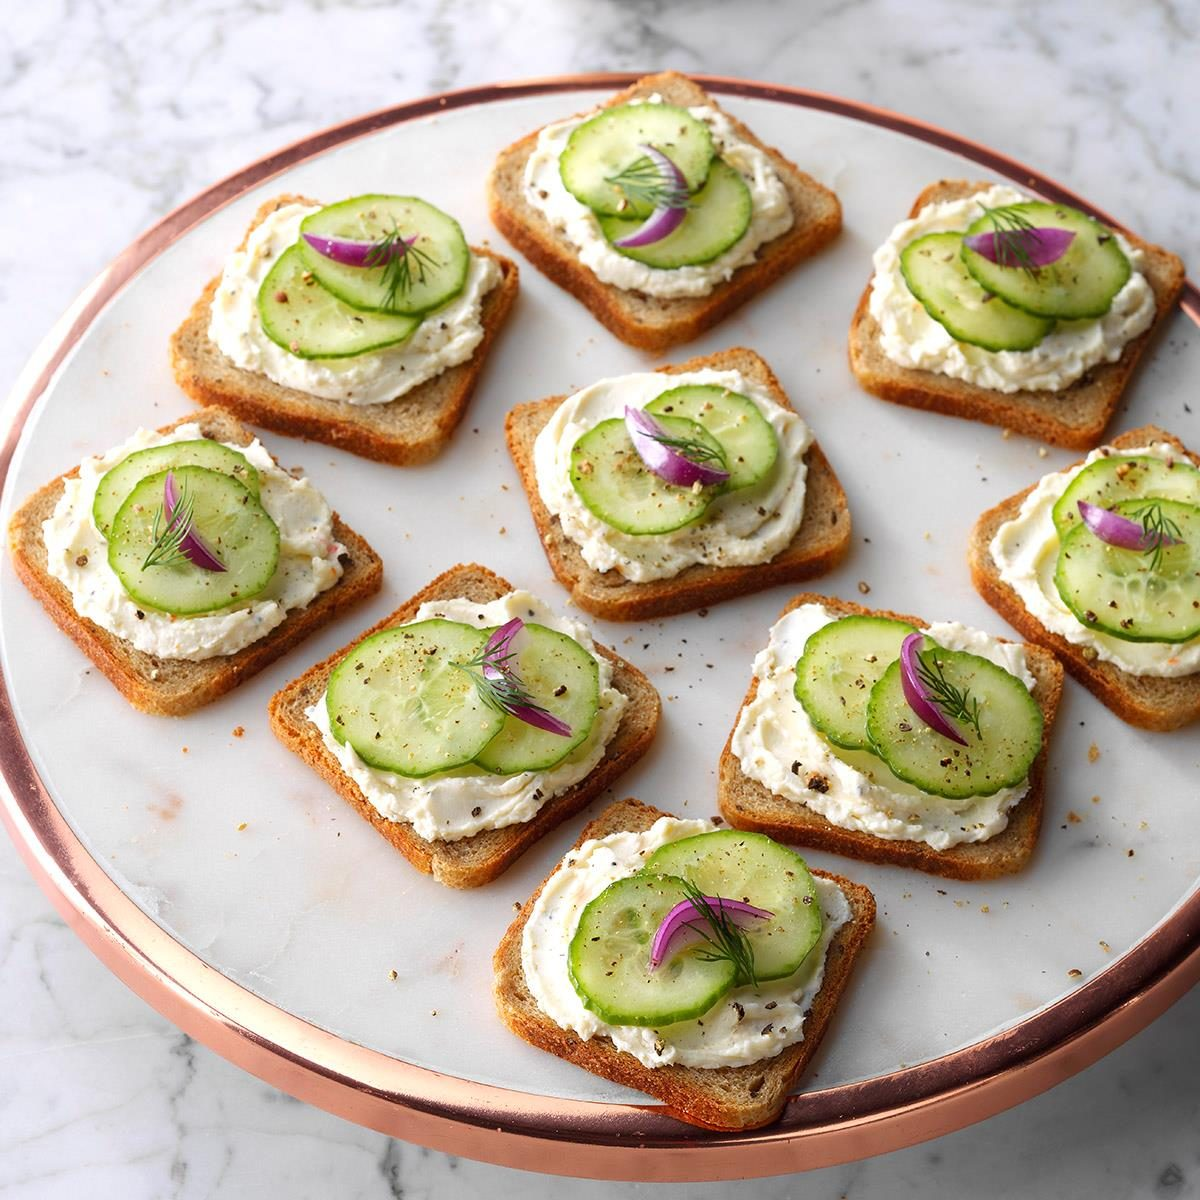 Party Food Spread For Kids: Cucumber Party Sandwiches Recipe